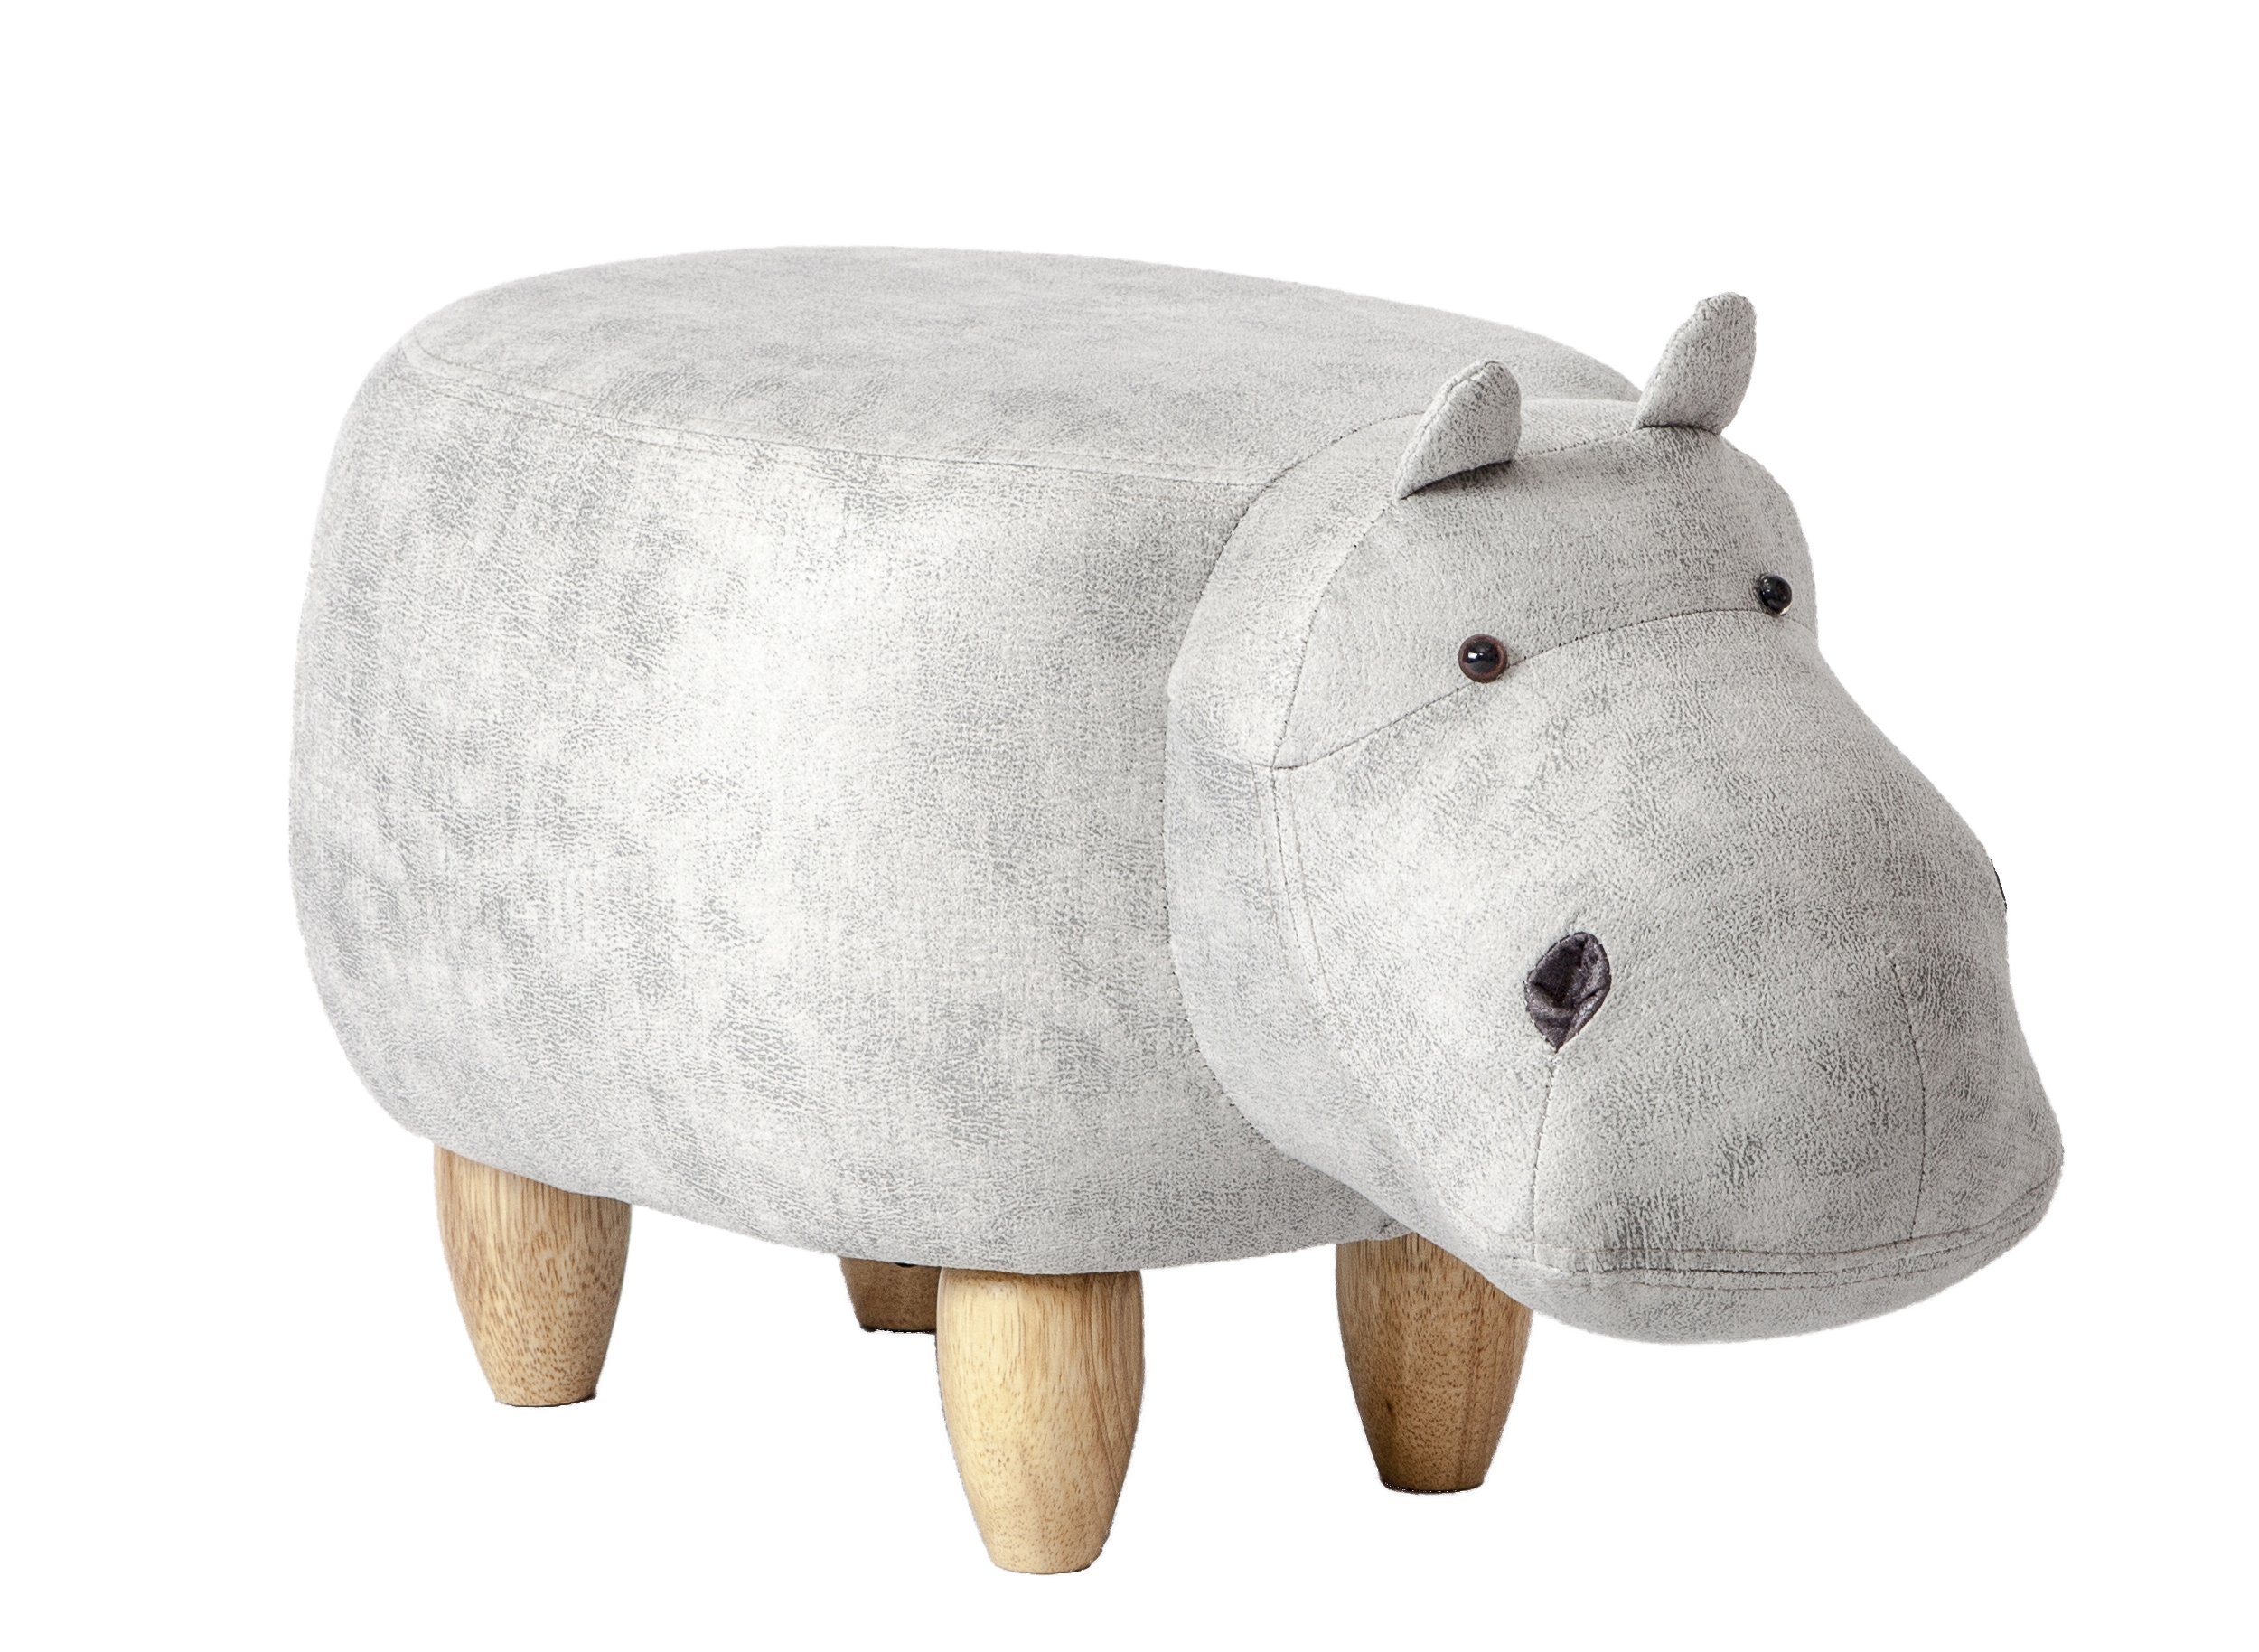 PIQUU Padded Soft Hippo Ottoman Footrest Stool/Bench for Kids Gift and Adults (Grey)